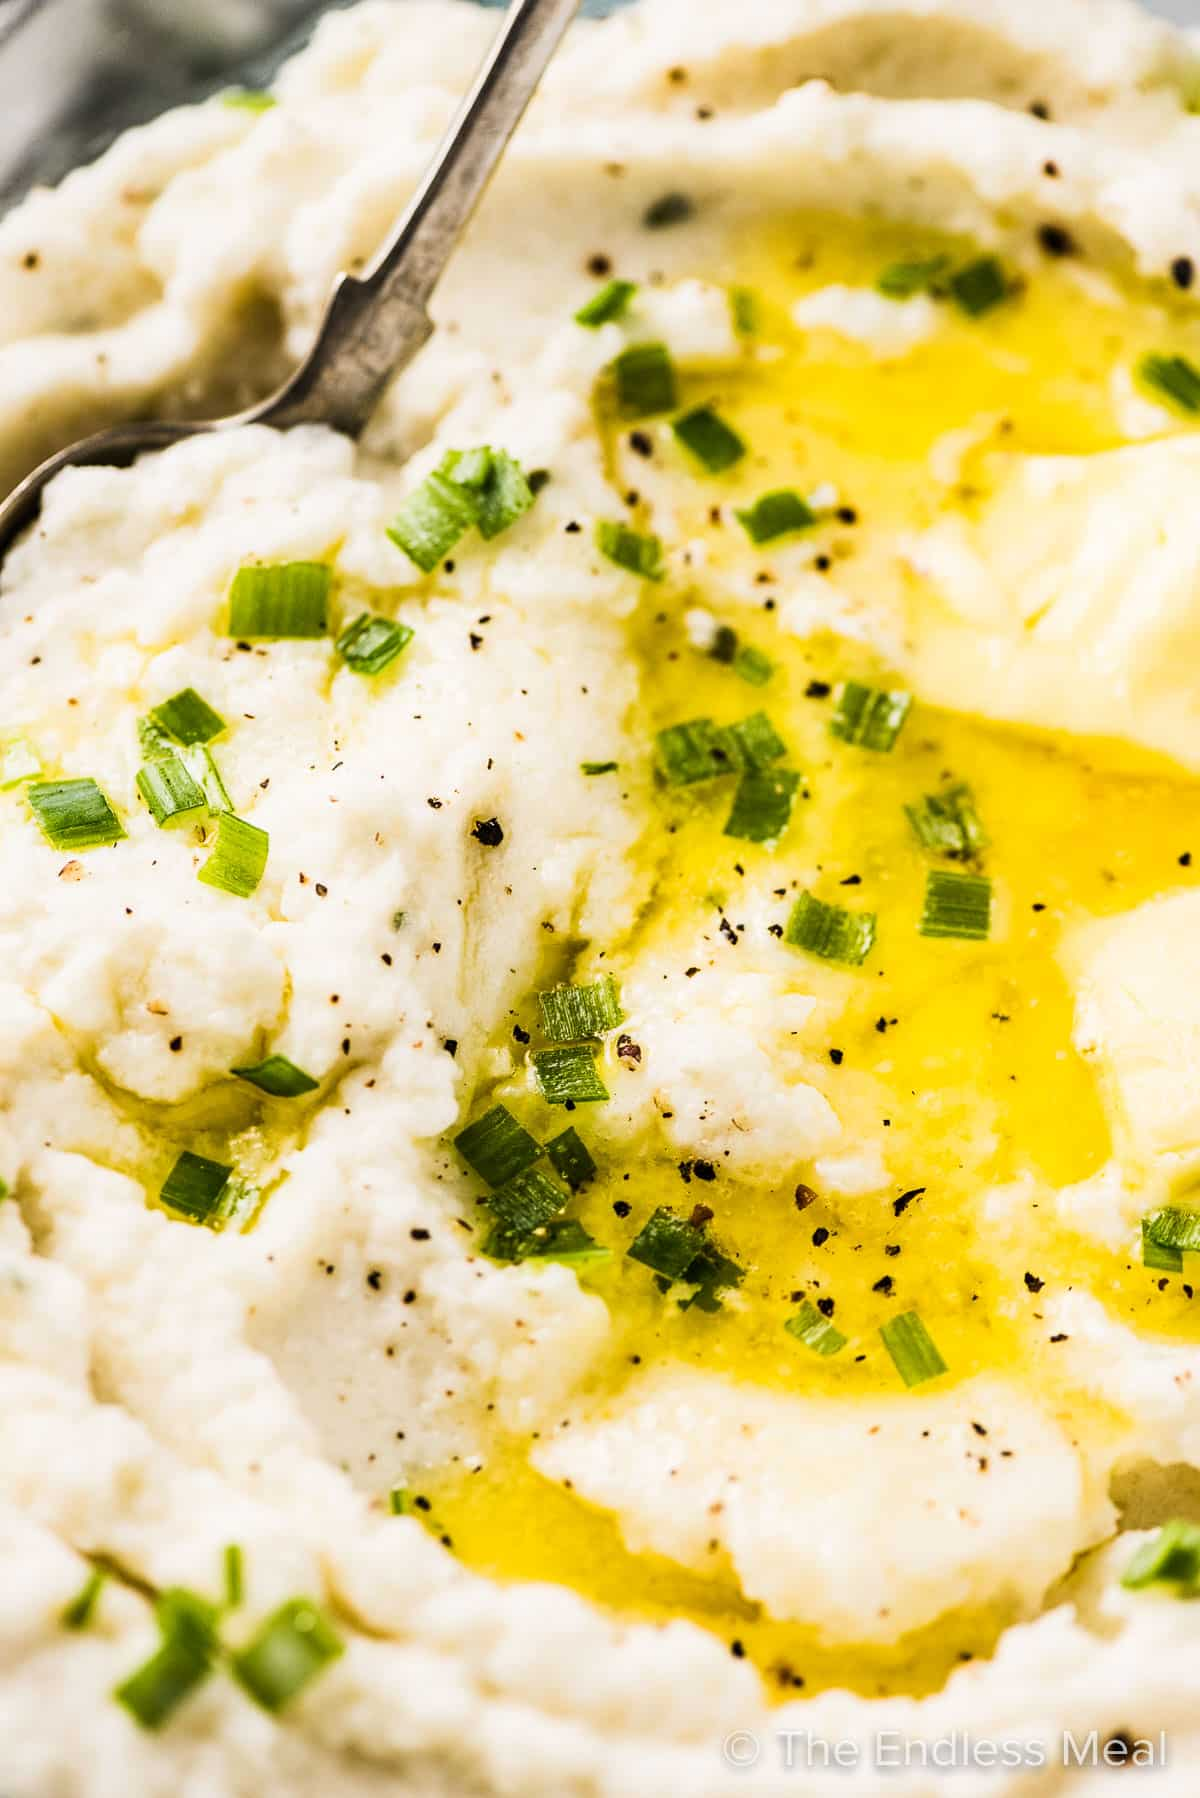 A close up of a butter pool in a bowl of mashed cauliflower potatoes.